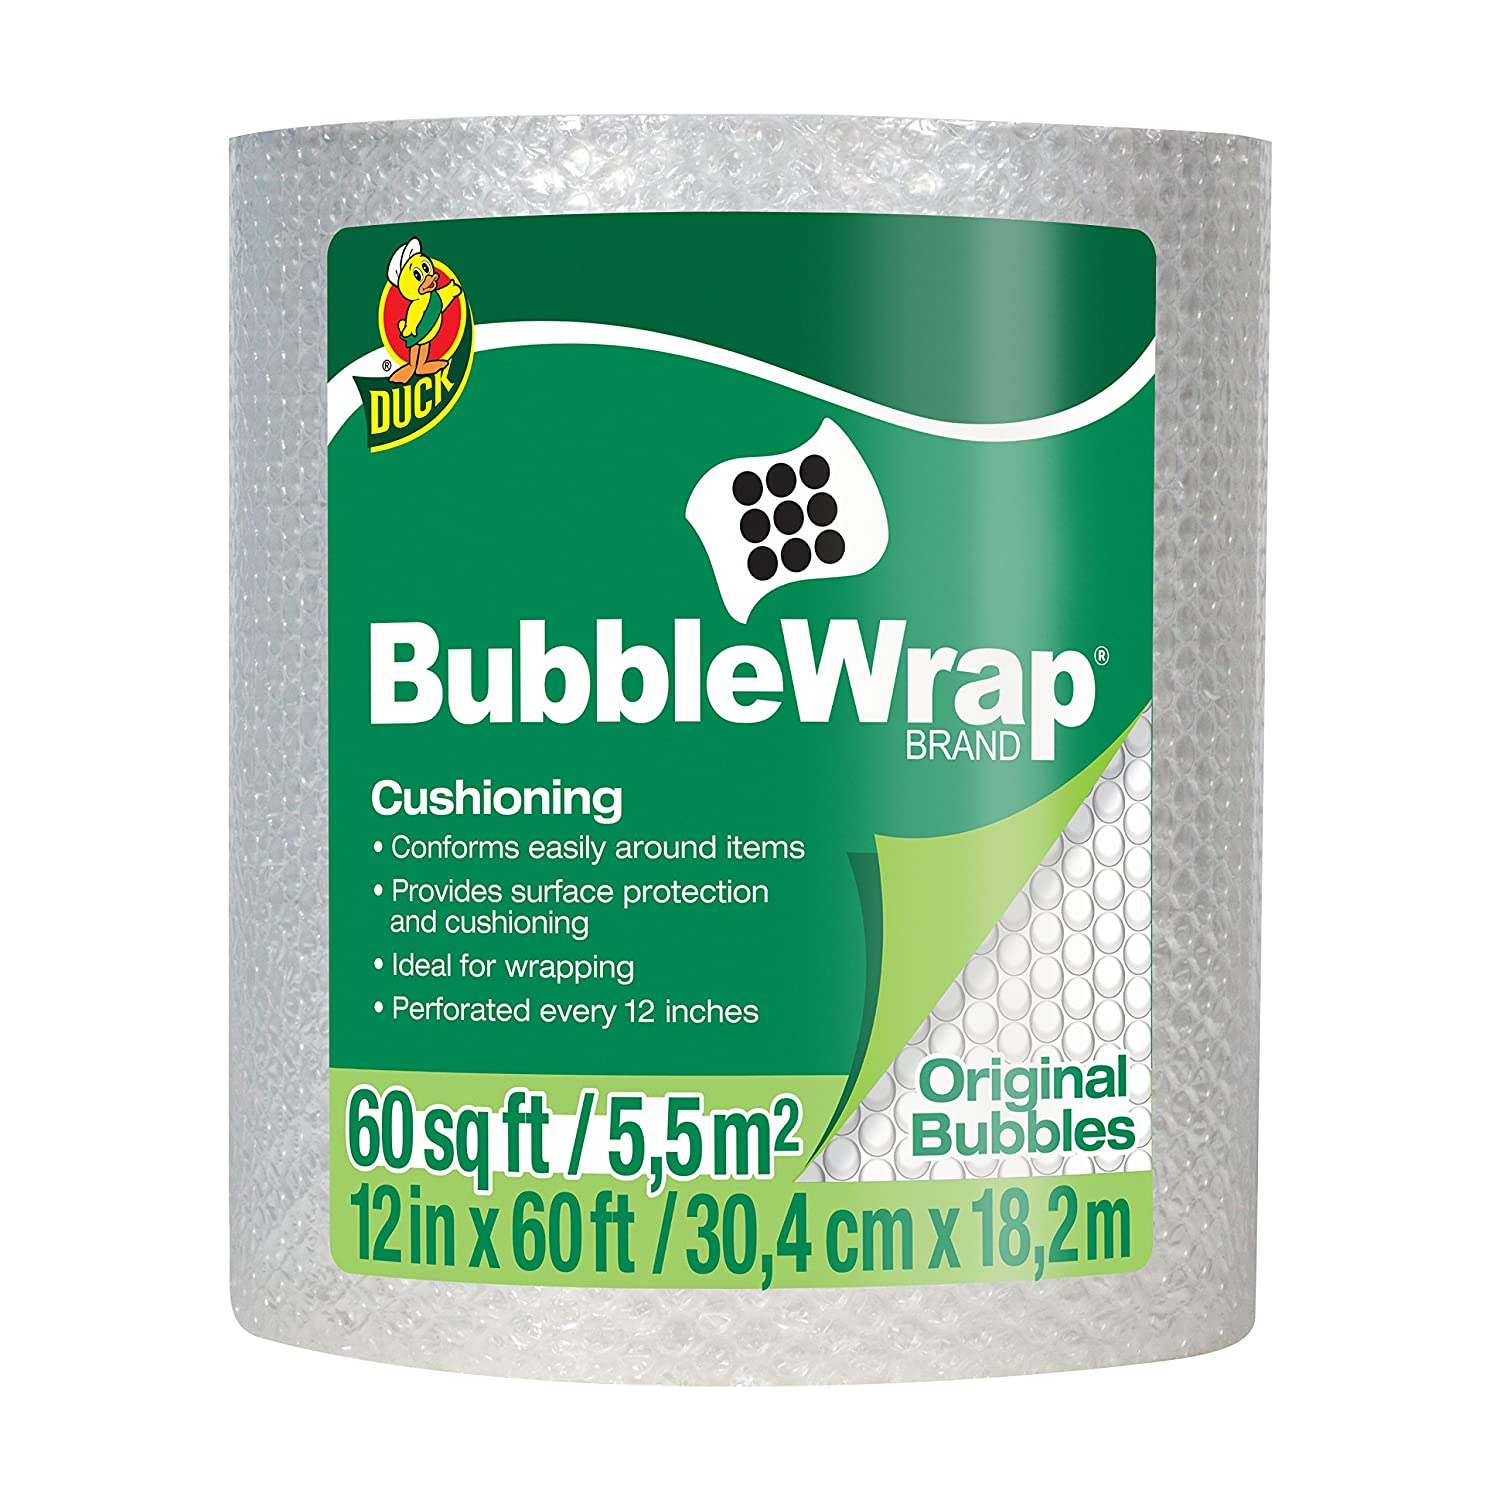 Duck Brand Bubble Wrap Original Cushioning, 12 Widex60' Long, Single Roll (1061835), Clear 12 Widex60' Long